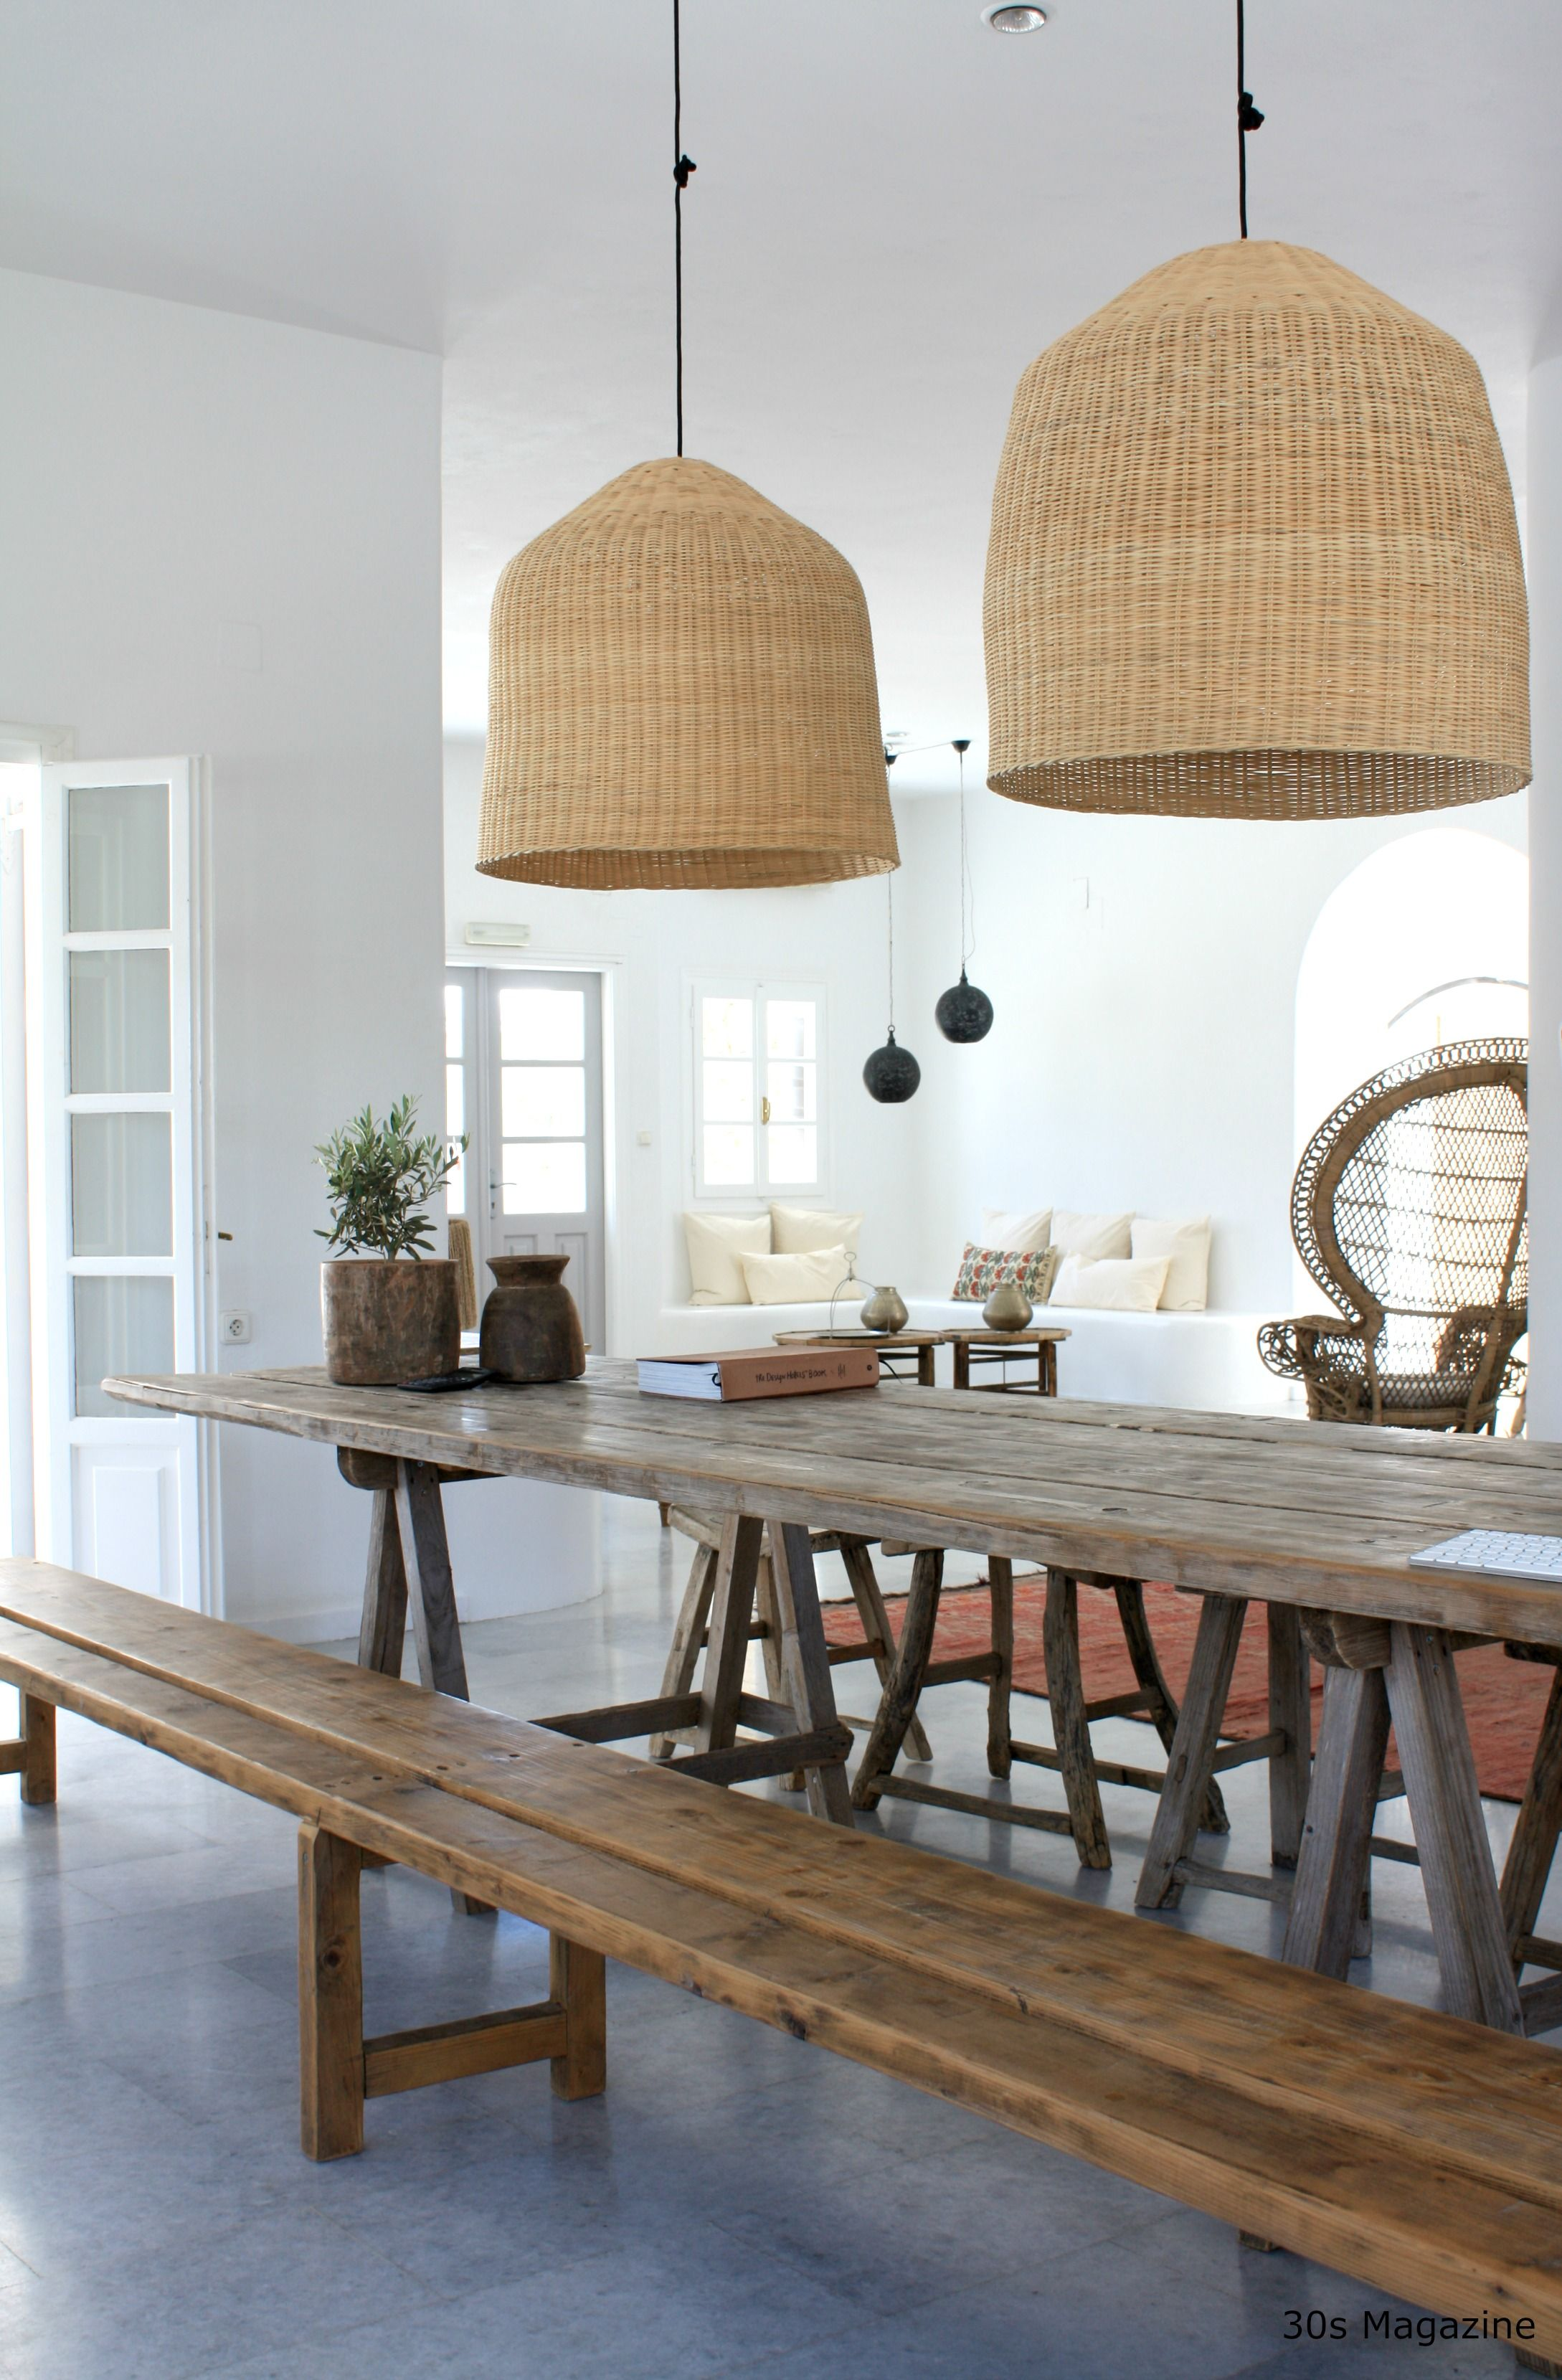 Cute Basket Pendant Light About Remodel Inspirational Home